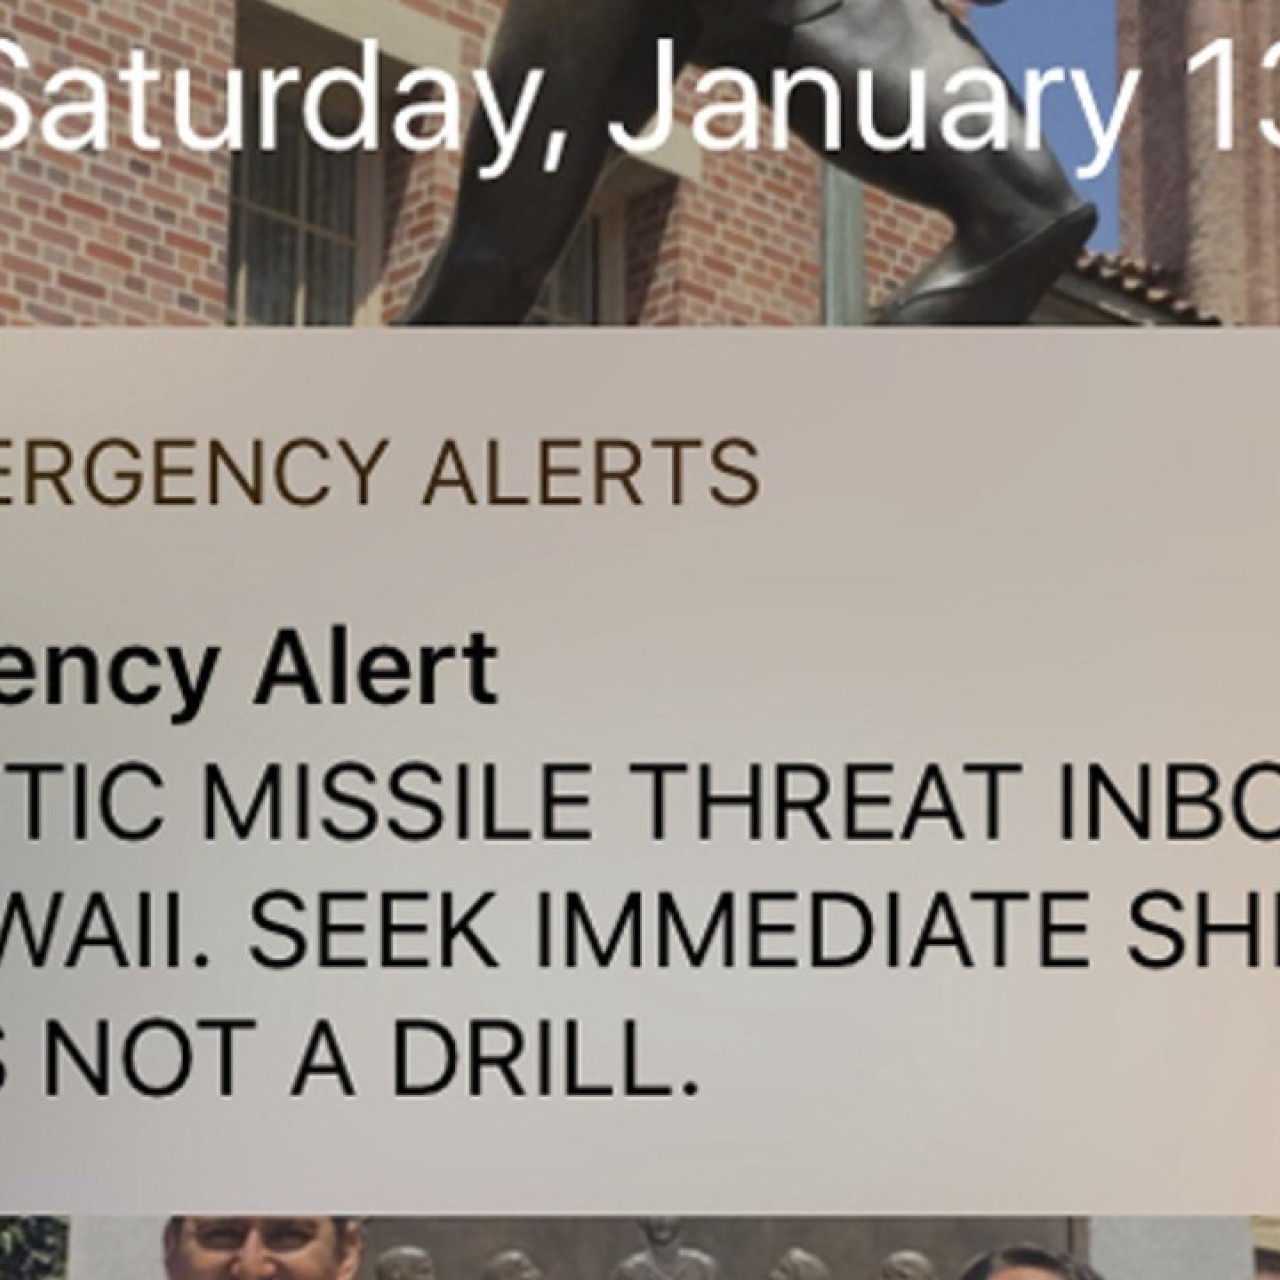 Incoming missile attack alert that spread panic in Hawaii blamed on